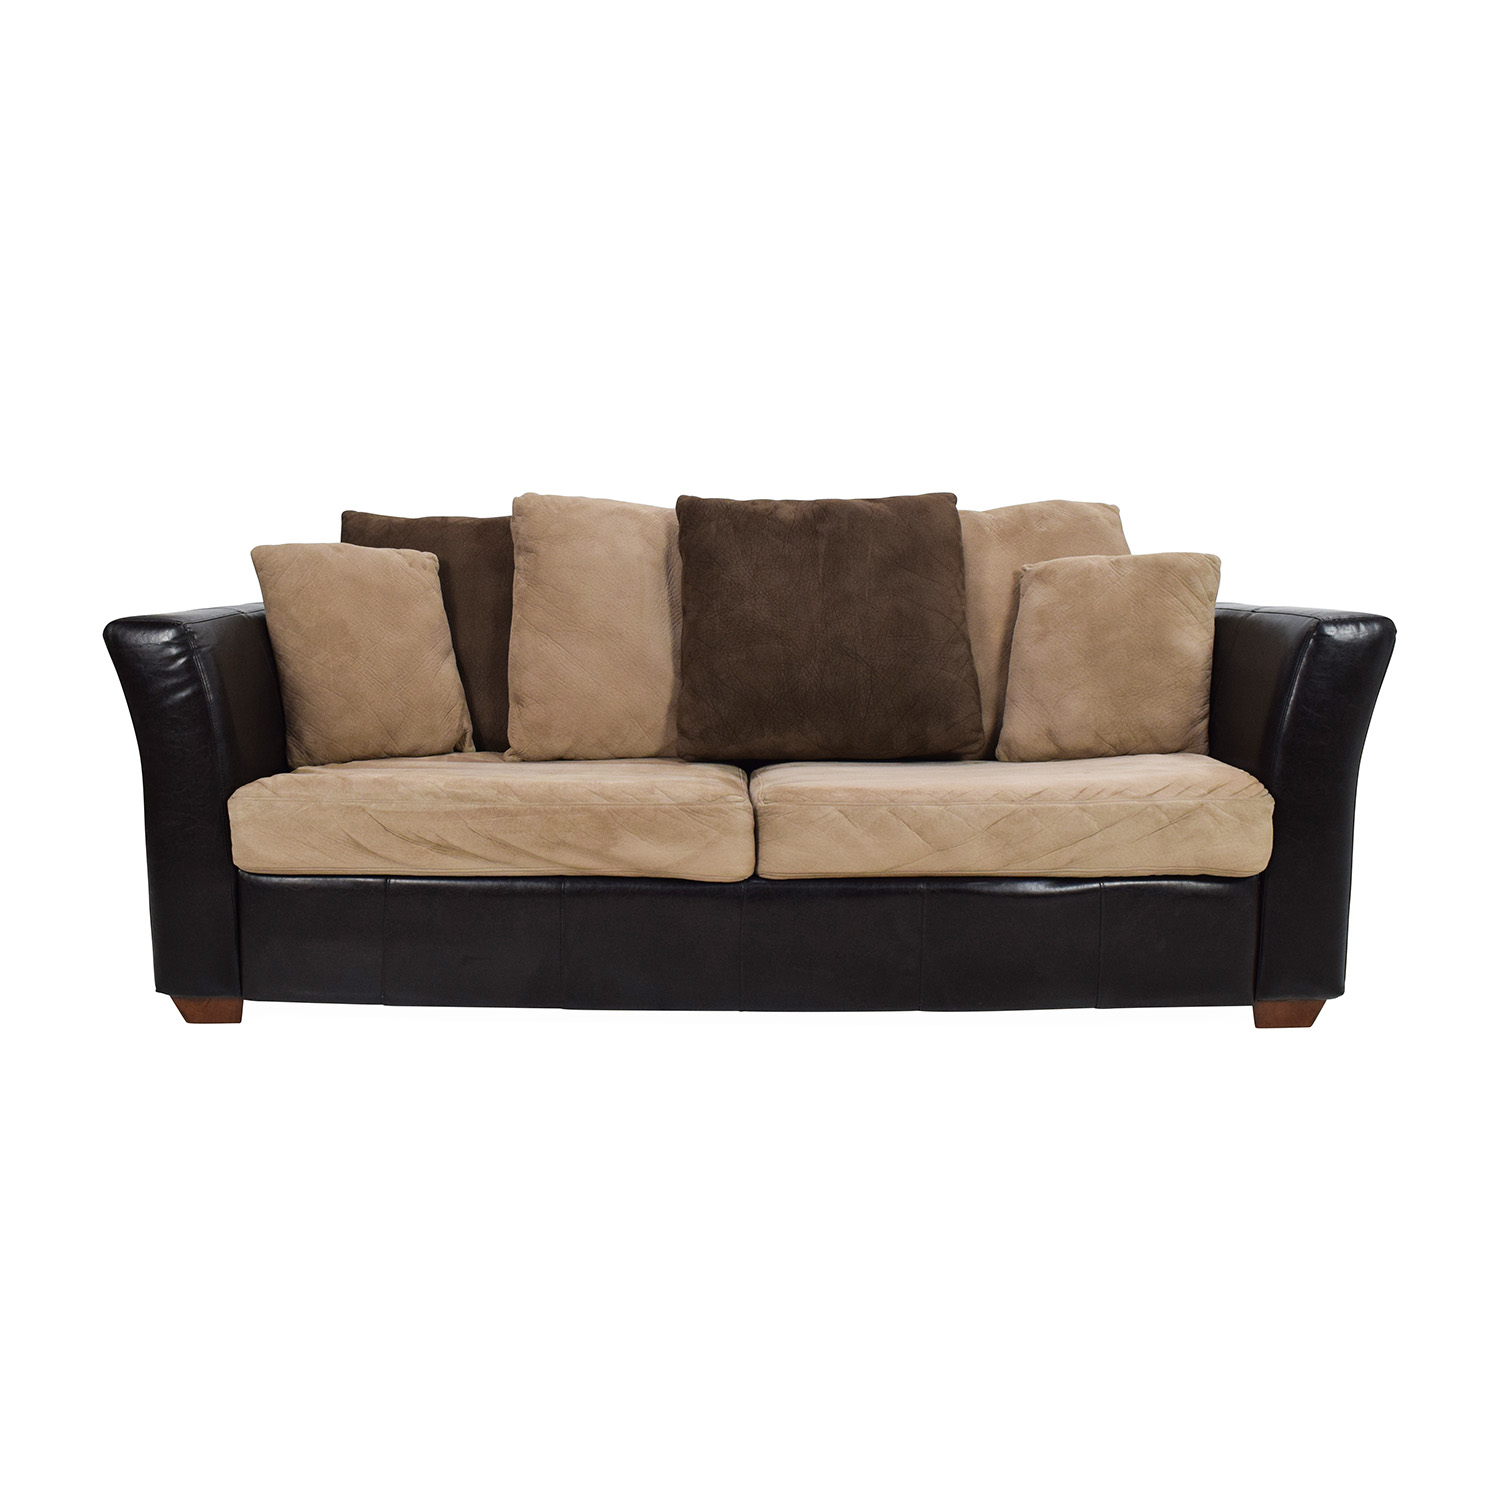 Jennifer Convertibles Jennifer Convertibles Sleeper Sofa for sale